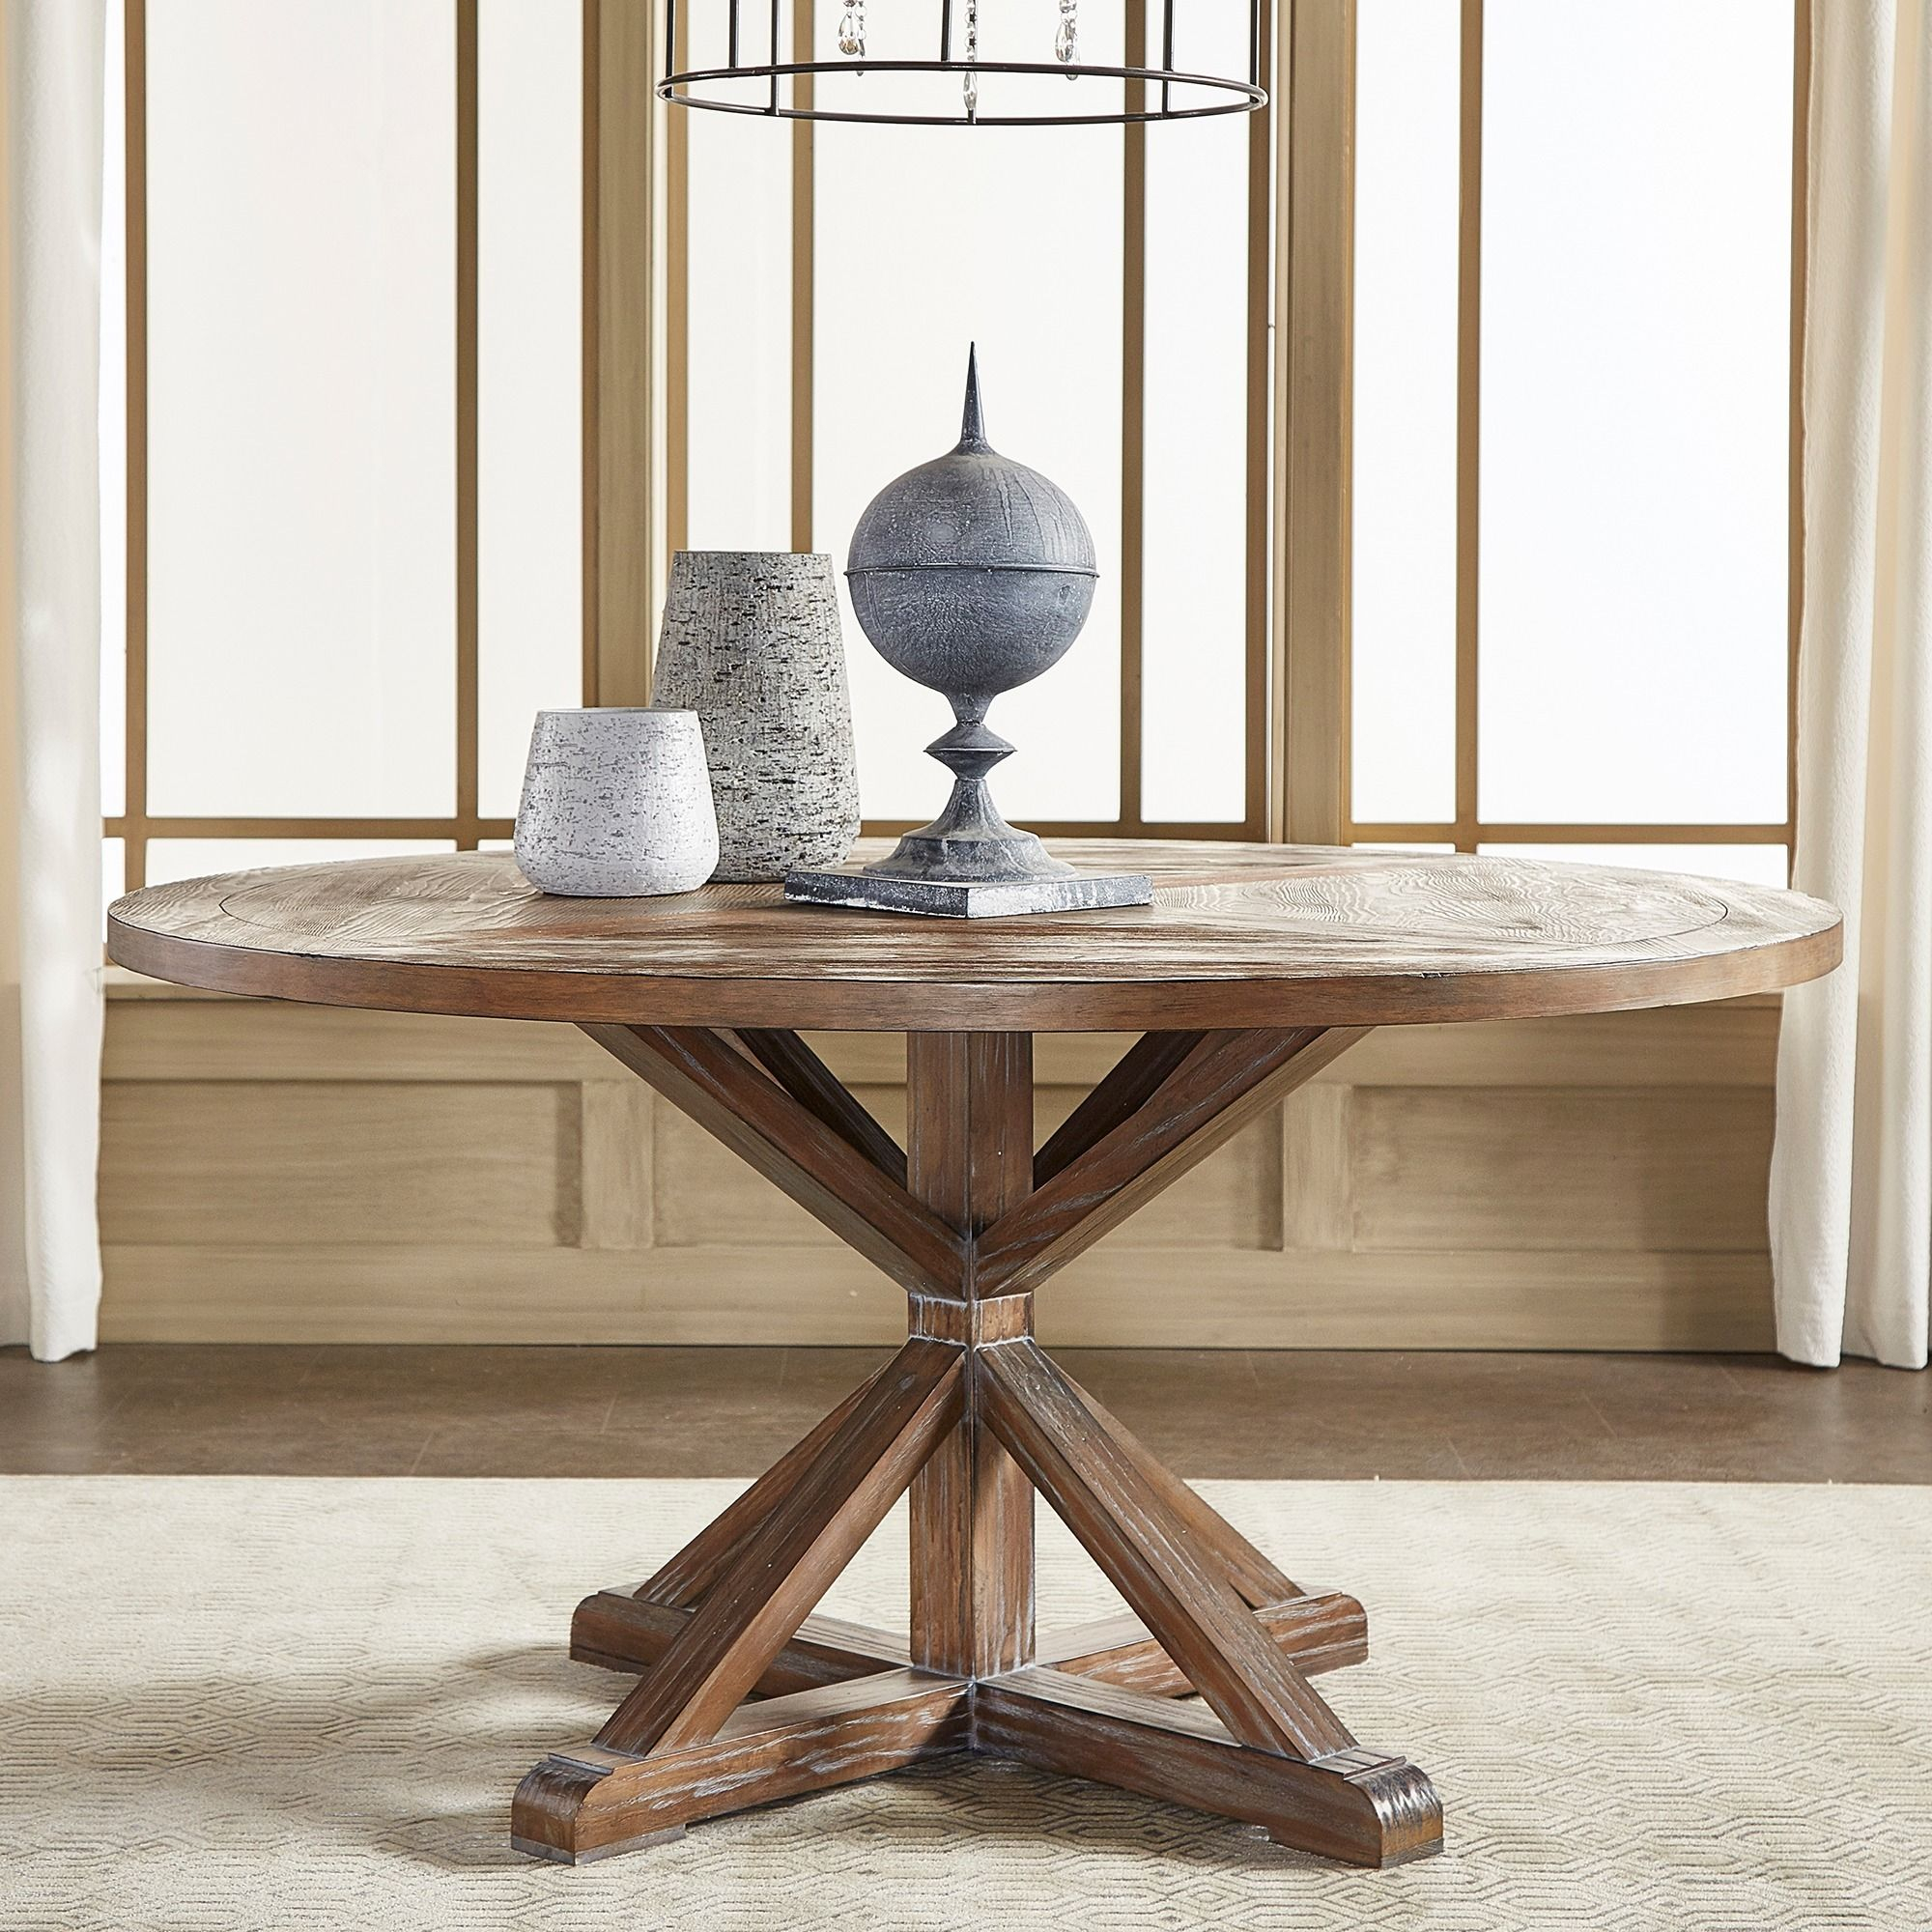 Benchwright Rustic X Base Round Pine Wood Dining Table Regarding Most Current Gray Wash Benchwright Dining Tables (View 24 of 25)